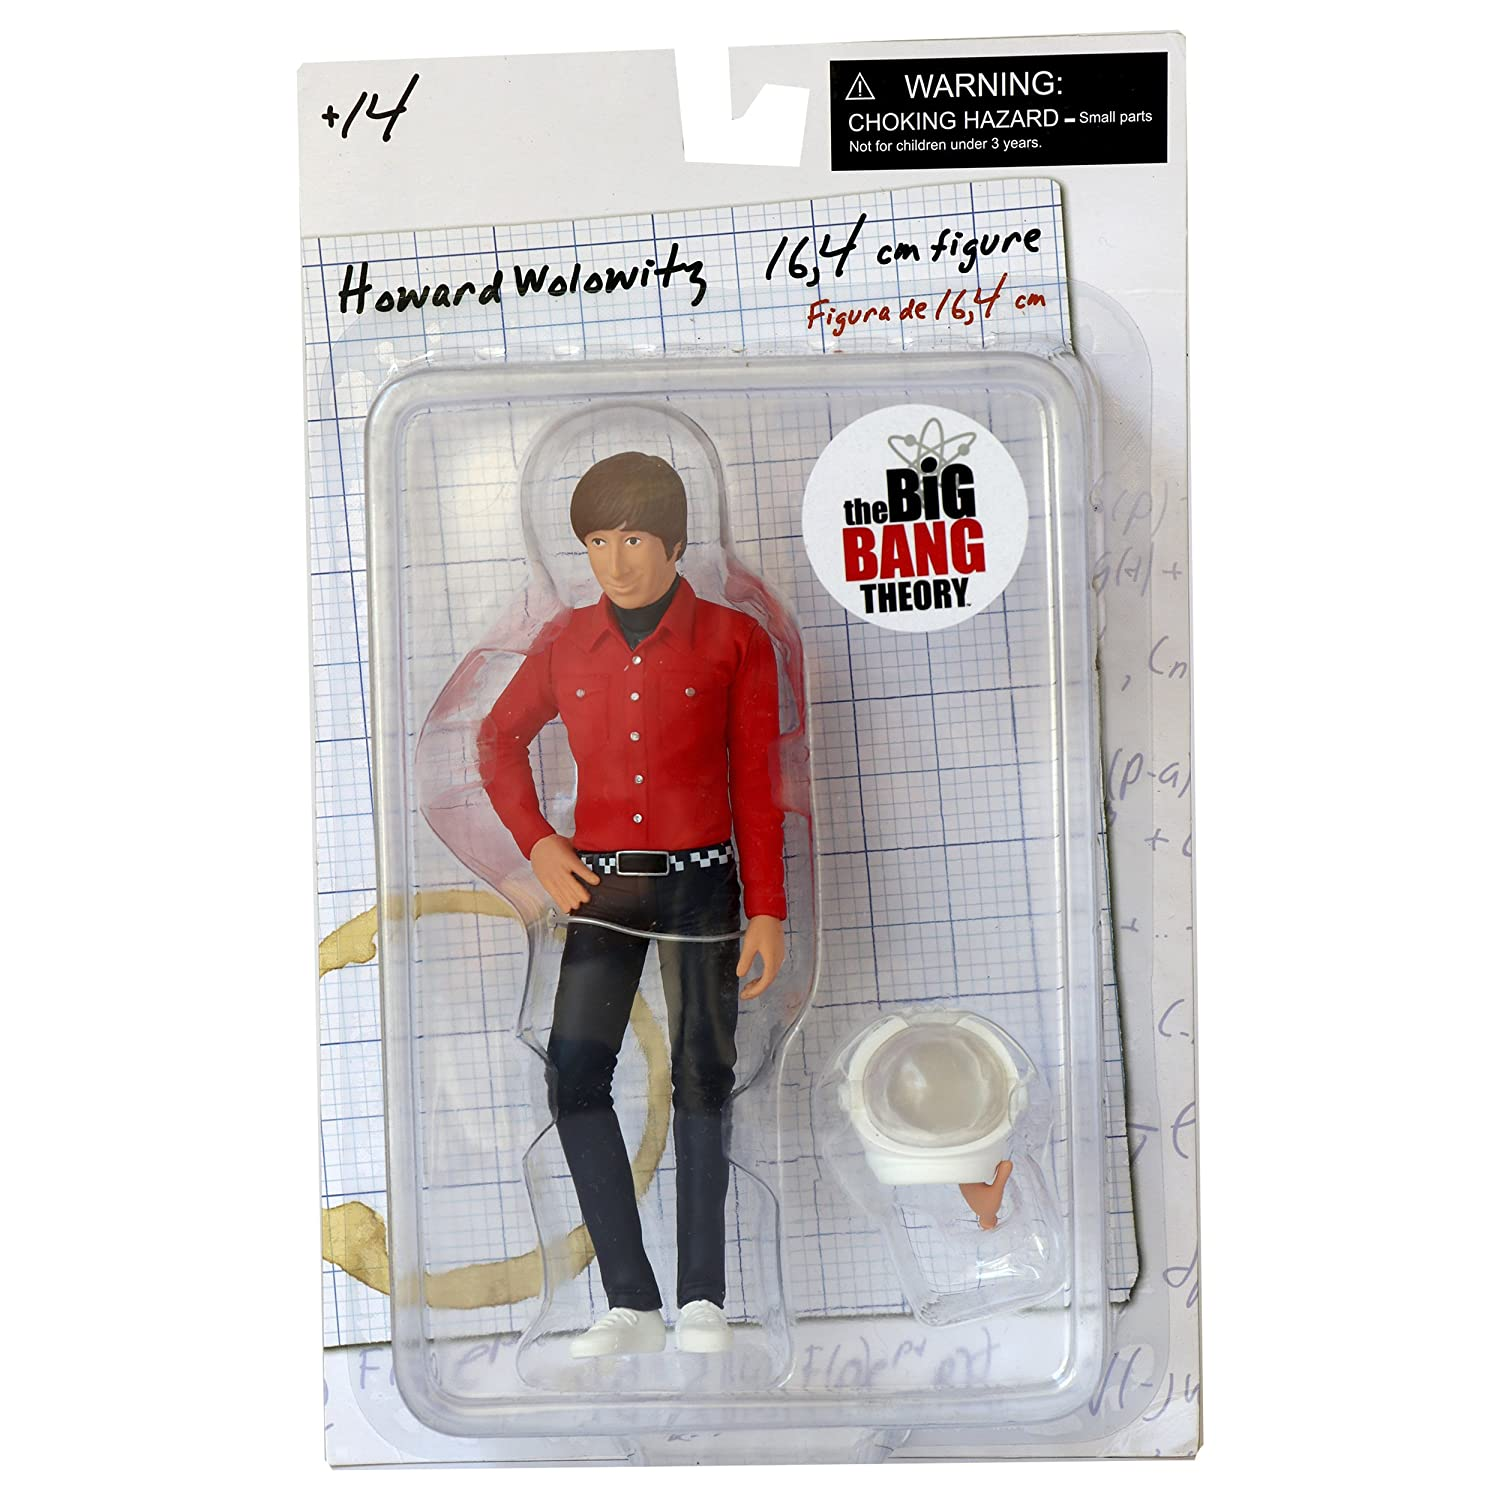 Big Bang Theory (Howard Wolowitz) Figure